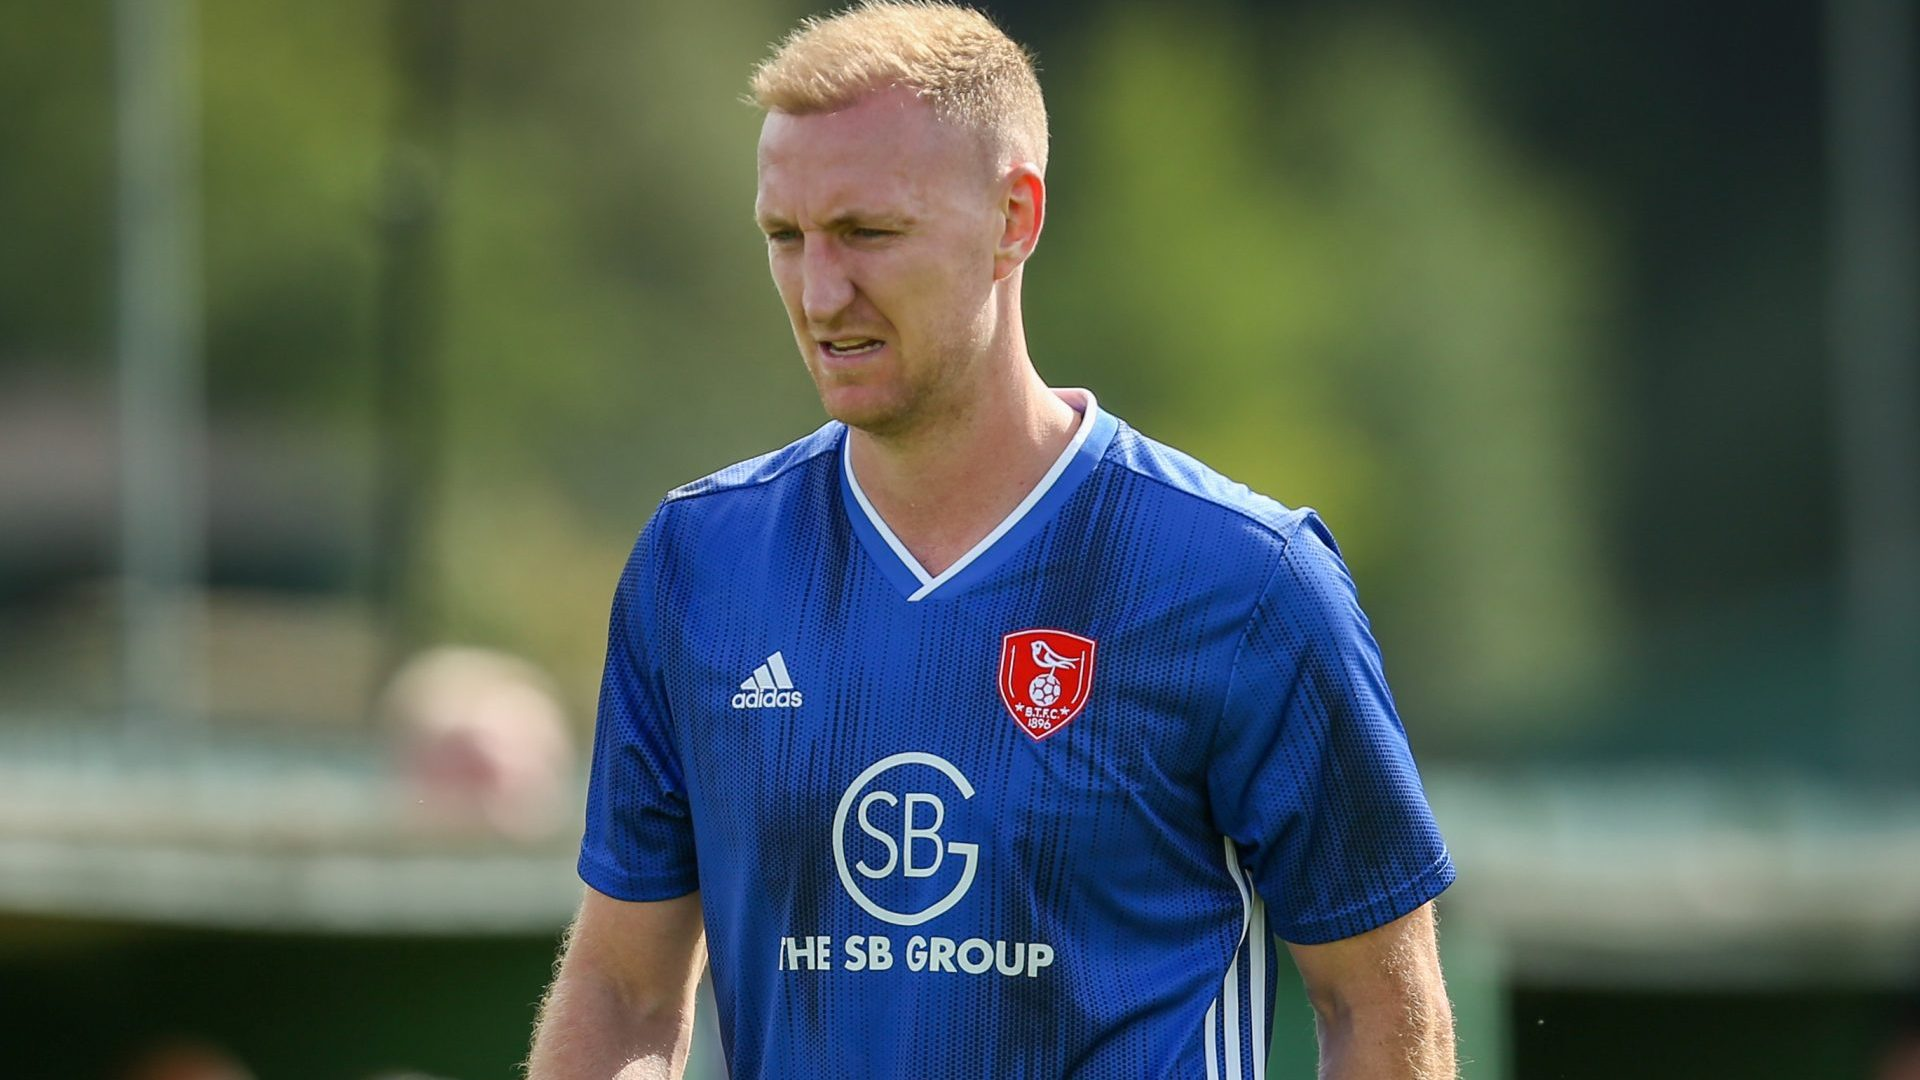 Duo depart Bracknell Town confirms Bobby Wilkinson